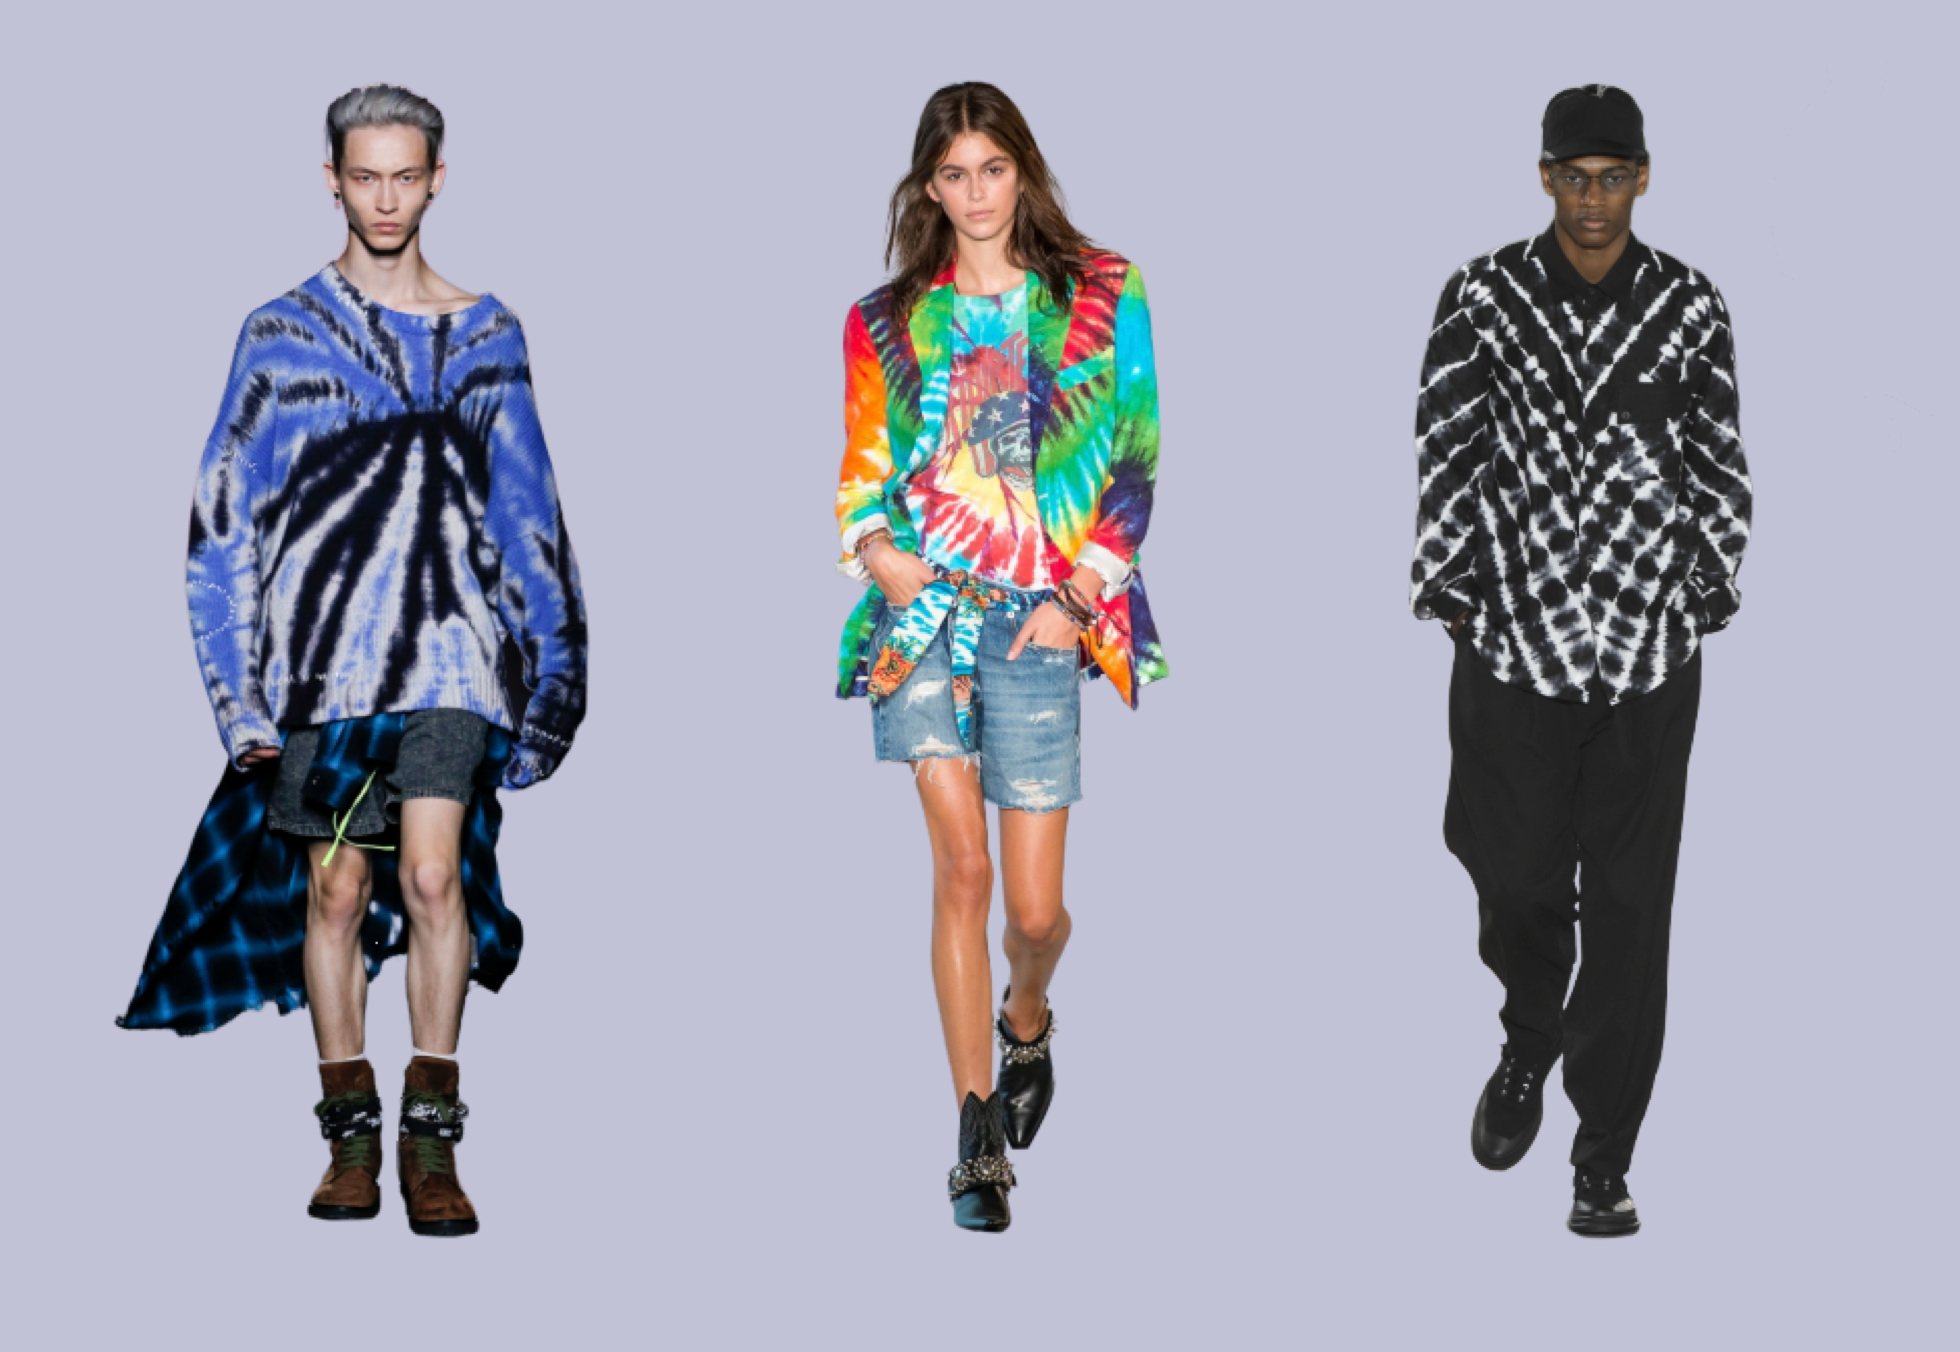 men-women-wearing-tie-dye-sweater-blazer-shirt-on-runway